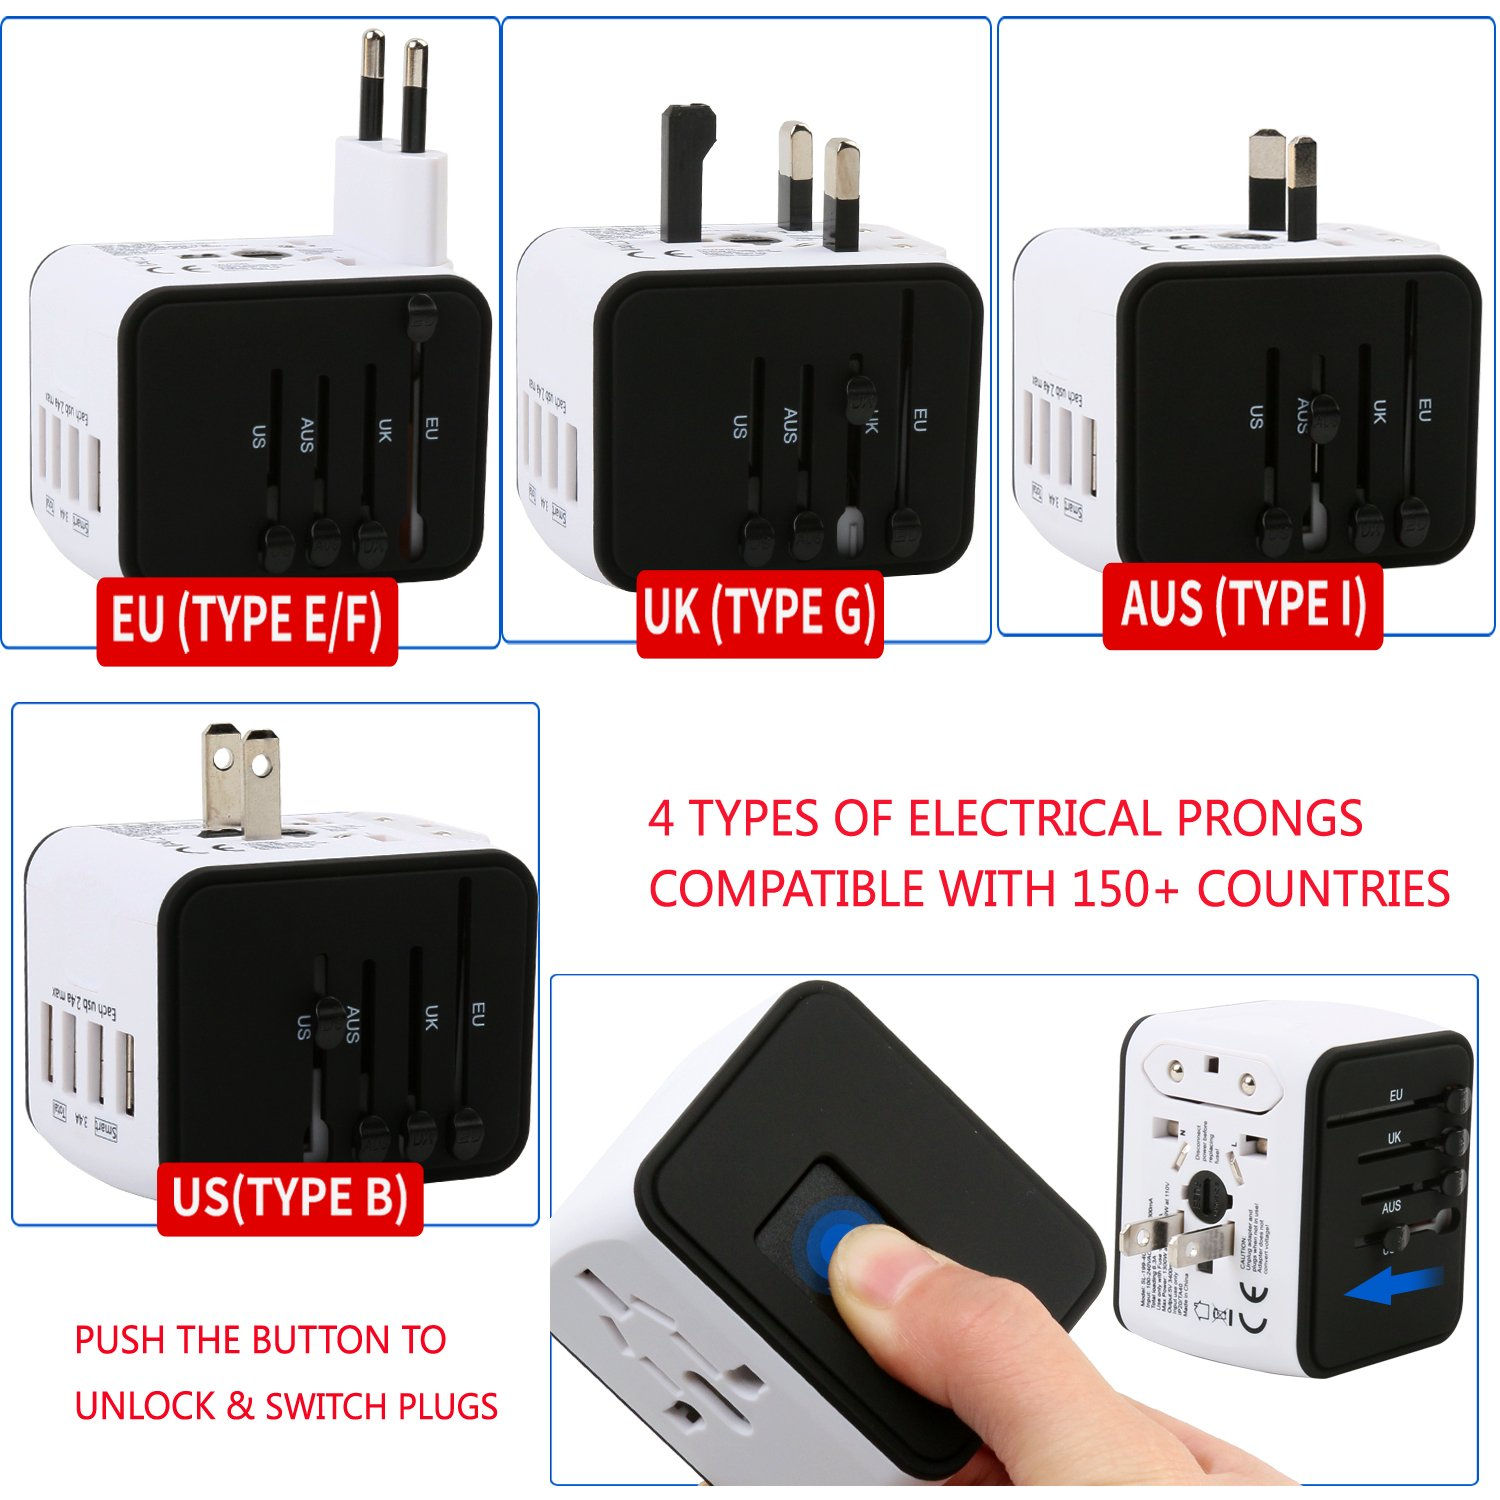 Universal Travel Adapter - 4 USB 3400mA MAX Wolrd Travel Adapter for iPhone iPad Laptop Android Phone Shaver Cameras etc - Plug Adapter Charger for US UK EU AU etc - Covers over 150 Countries (White)